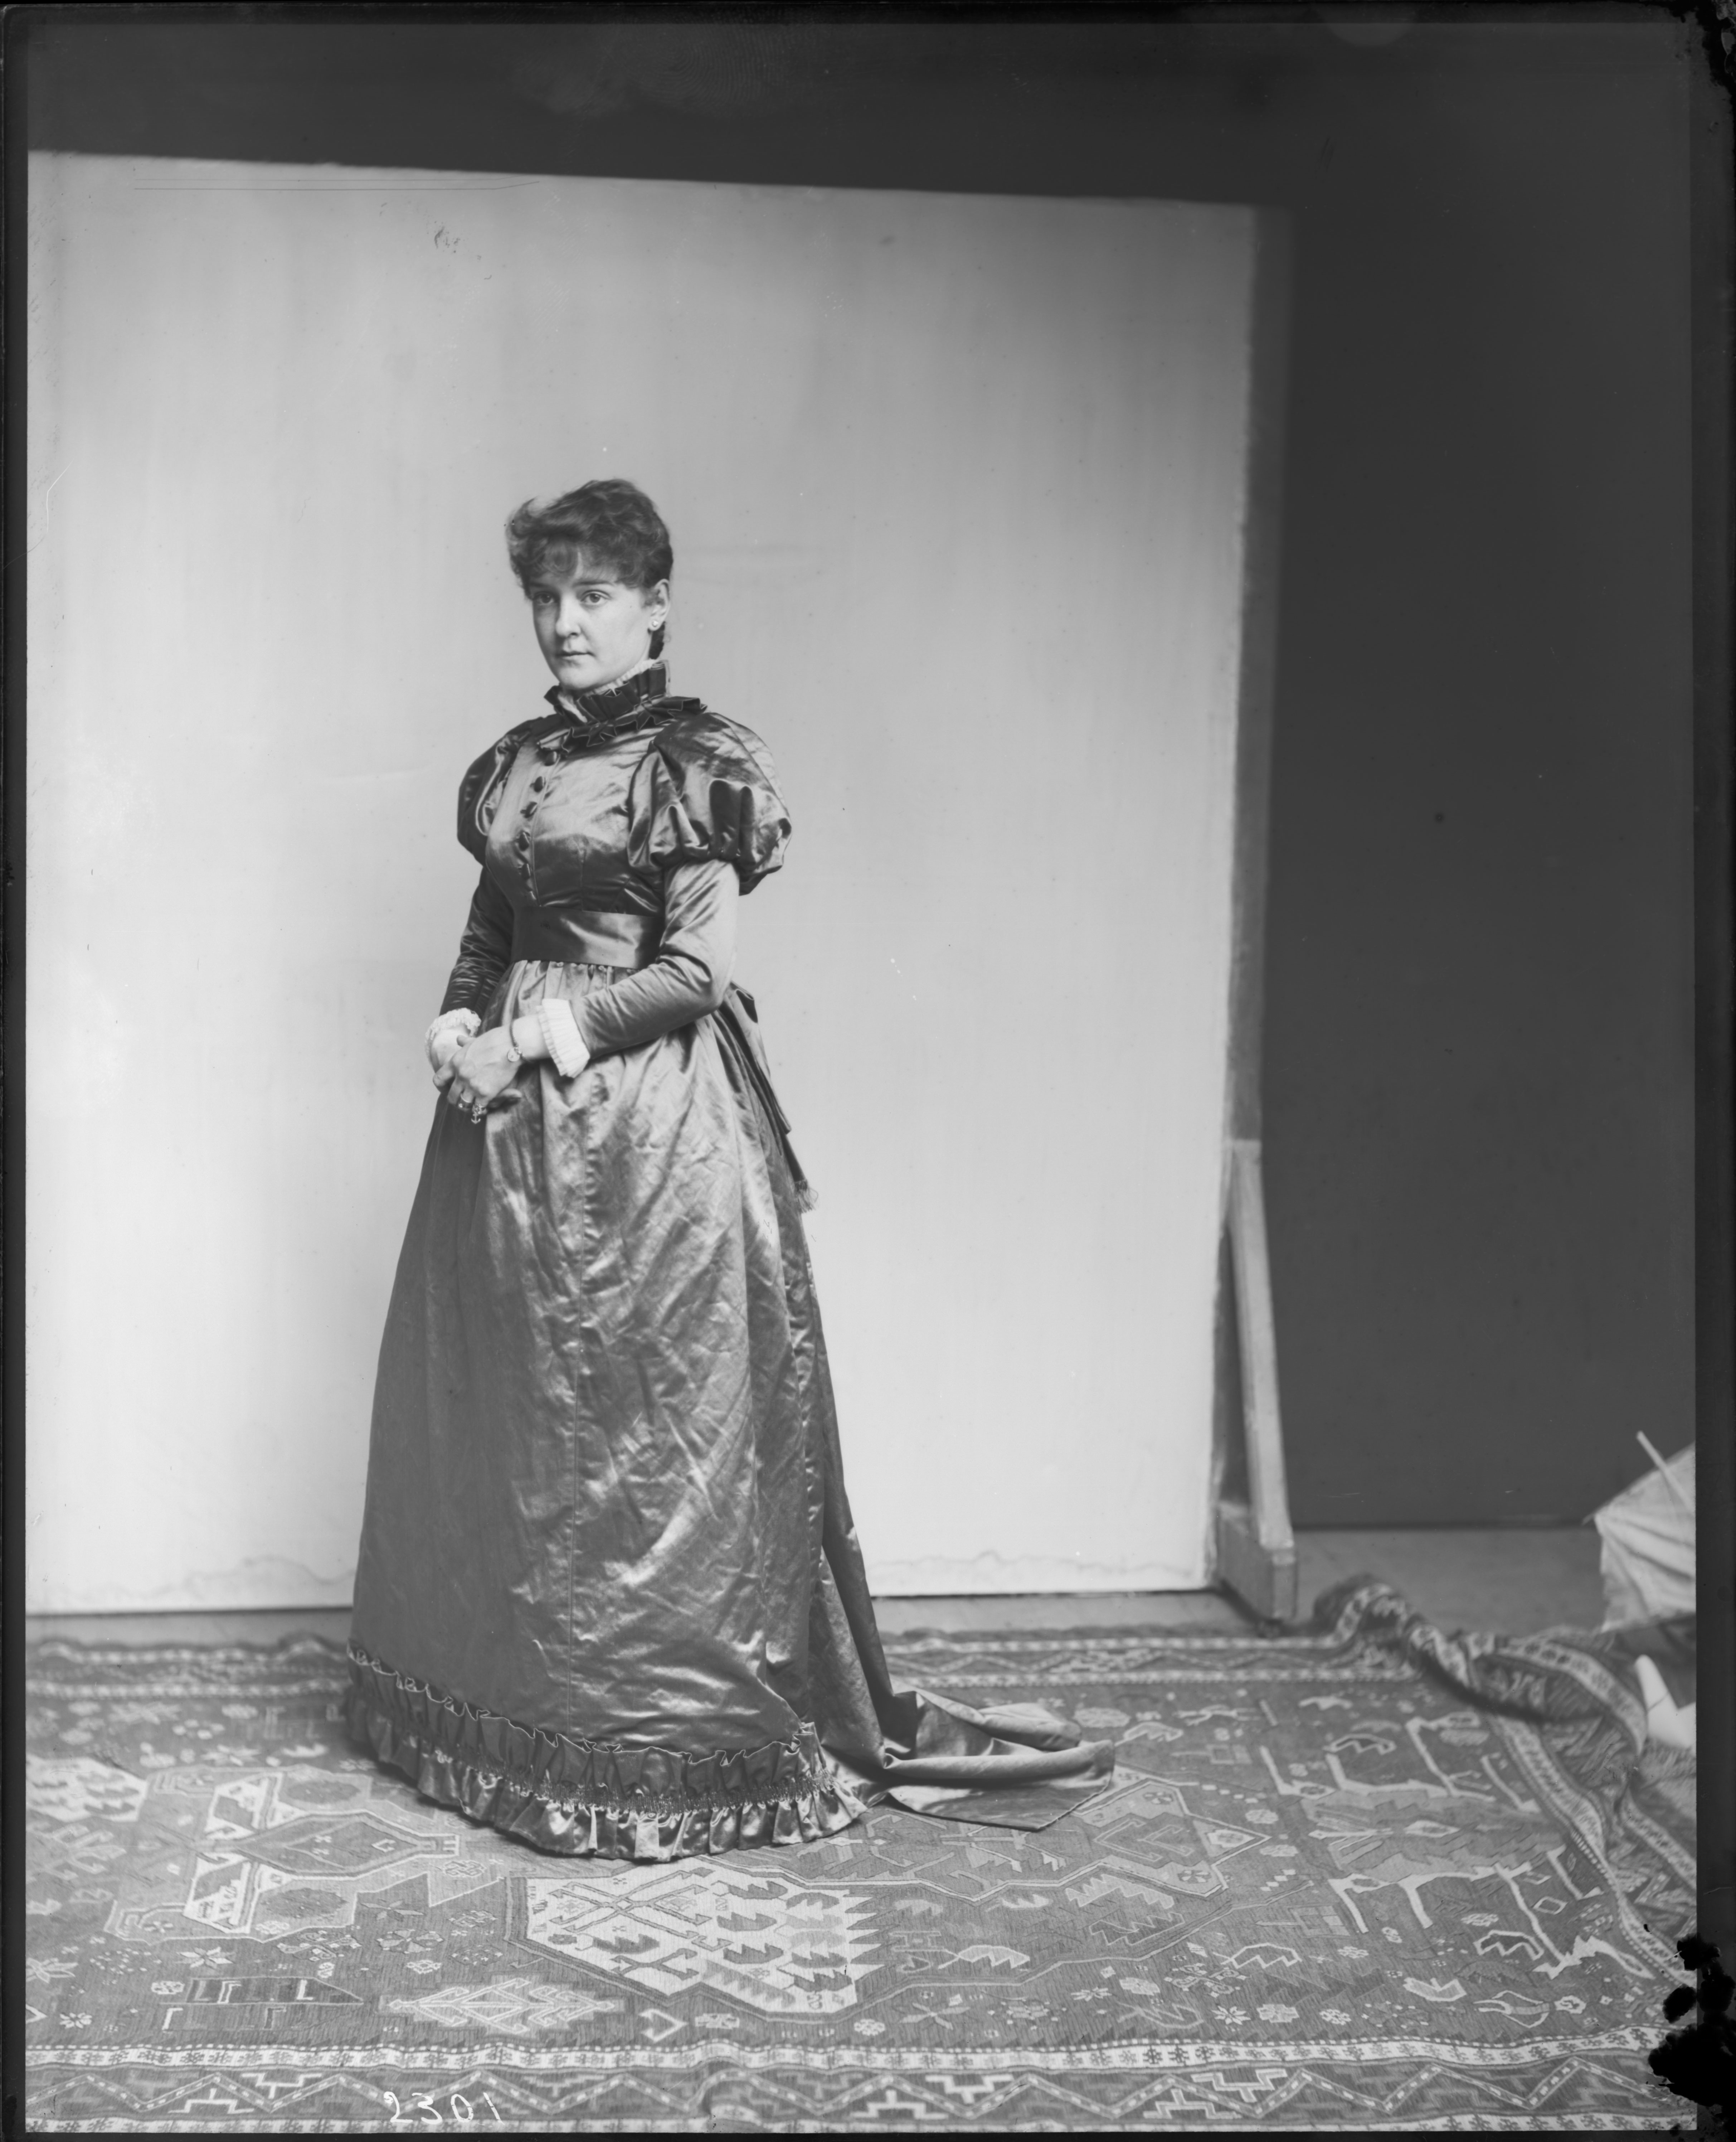 A woman in a dress, probably named Bernie Gallaher, stands to have her picture taken.